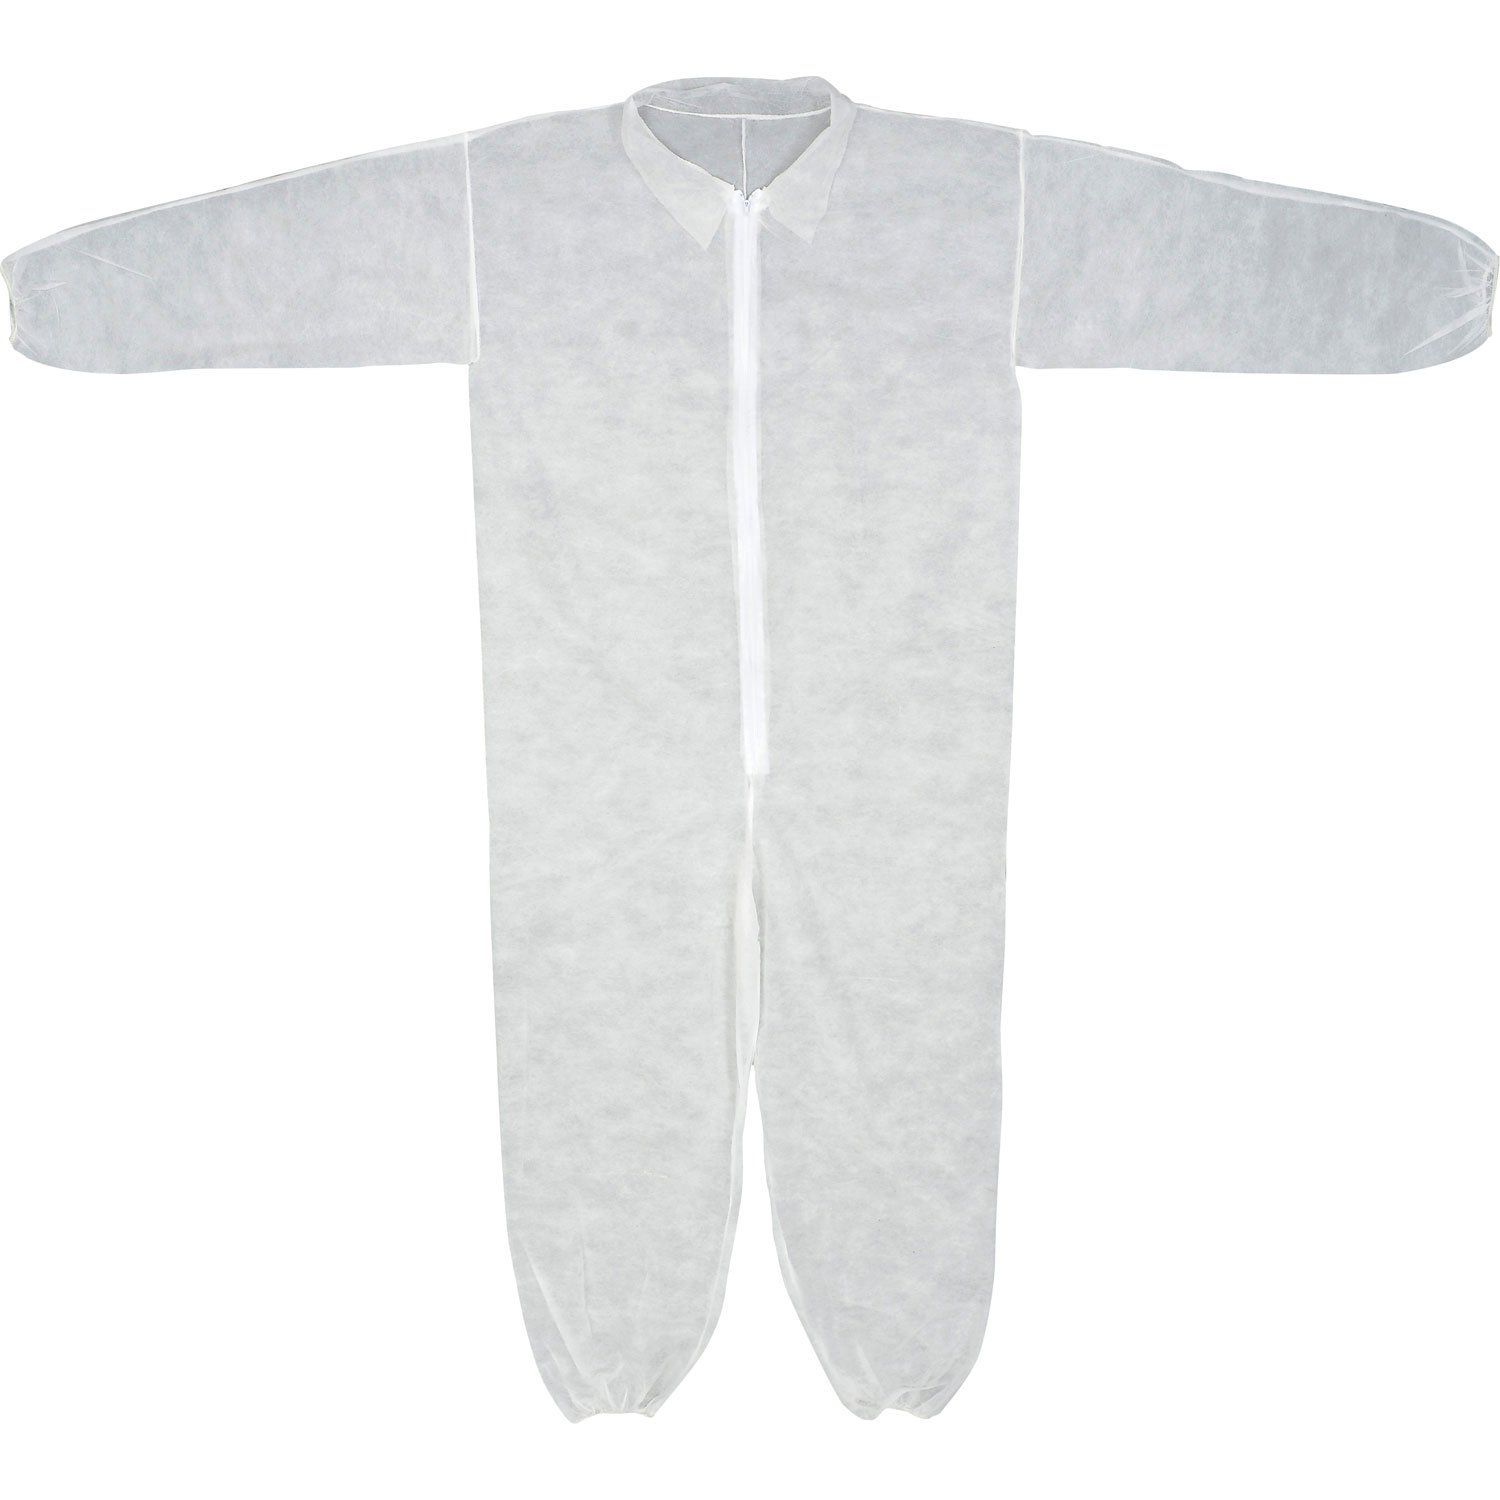 Coverall, Elastic Wrists & Ankles, Zipper Front, Single Collar, Polypropylene, White, M, 25/Case, Lot of 1